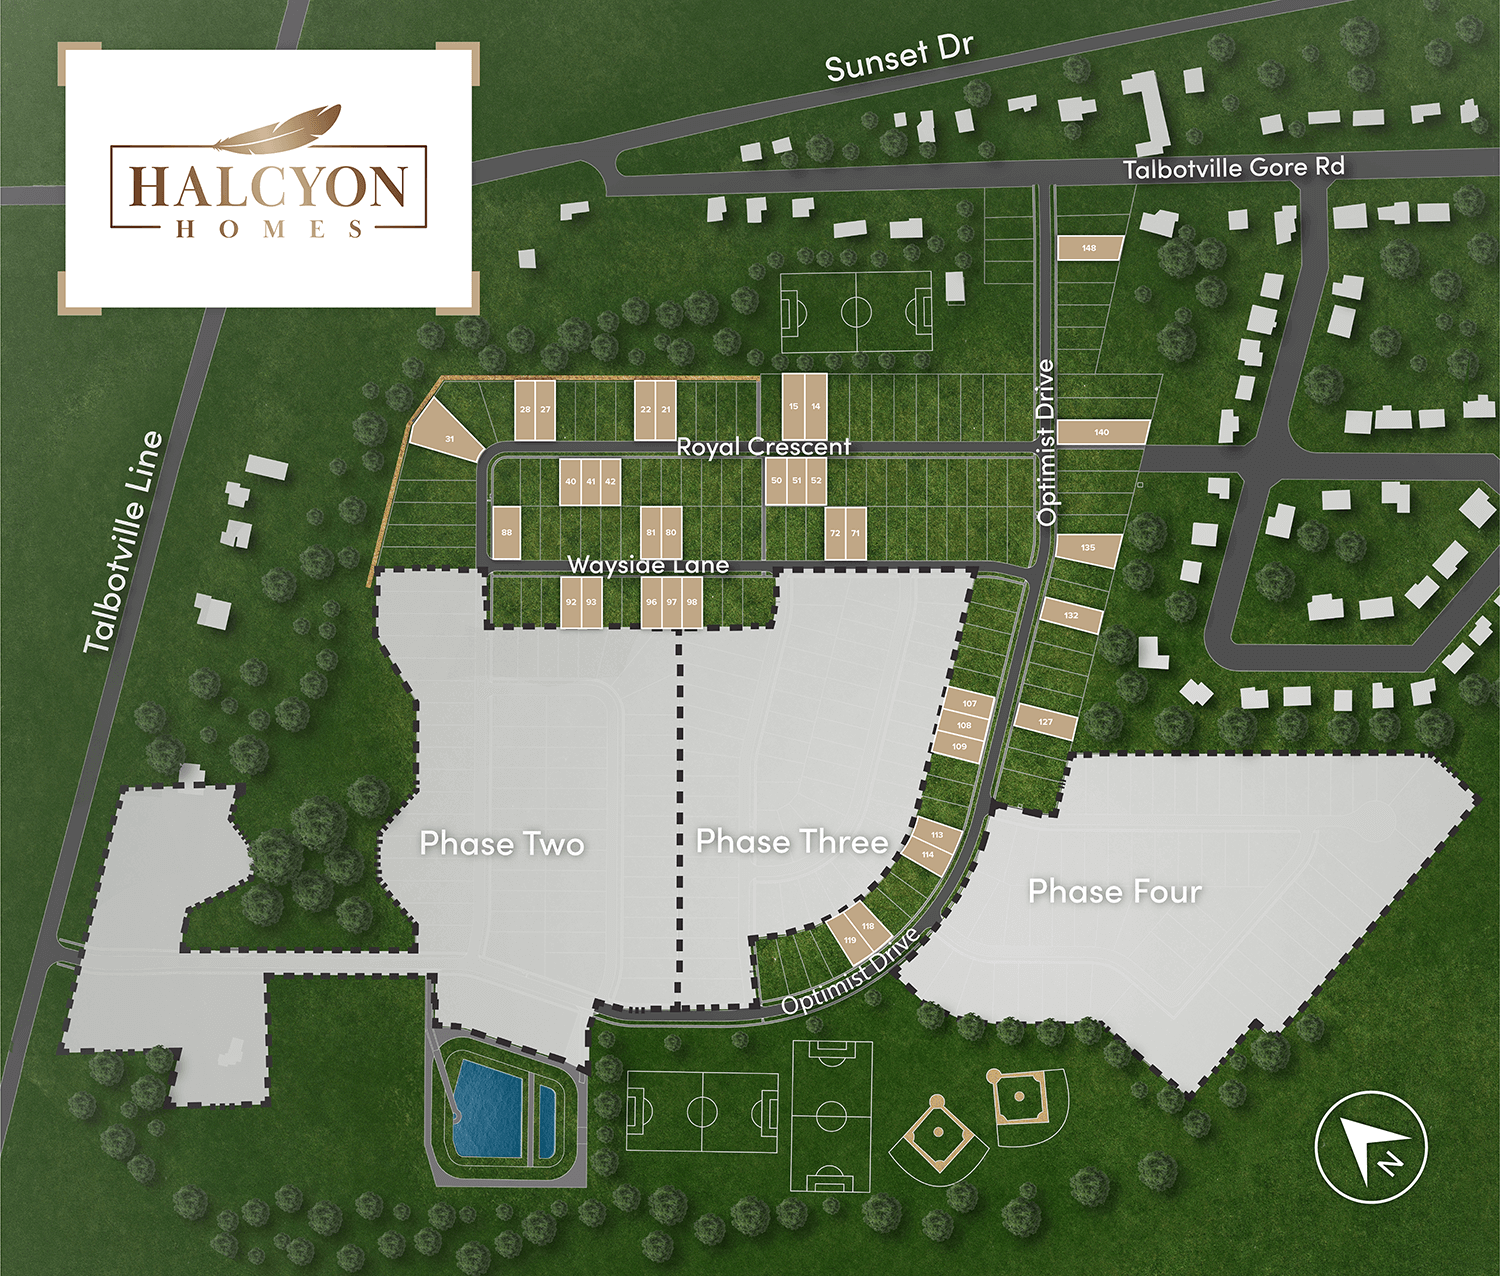 talbotville site plan with lot numbers